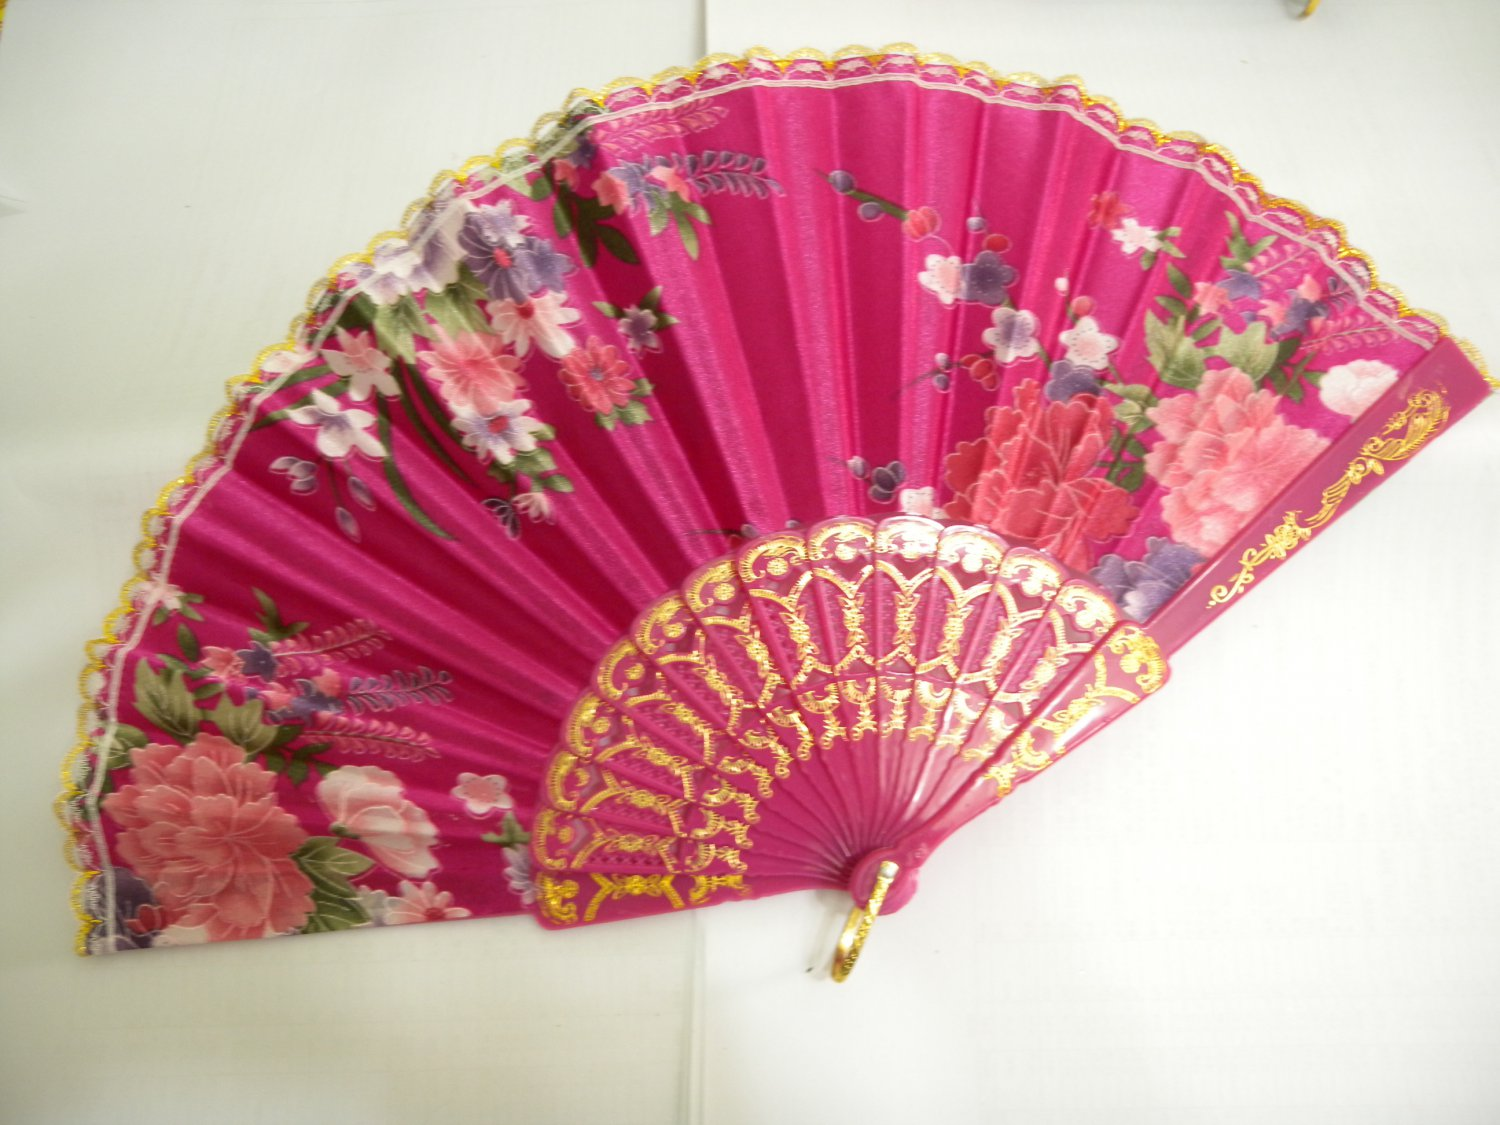 Brand New Japanese Floral Print Folding Fan - Pink